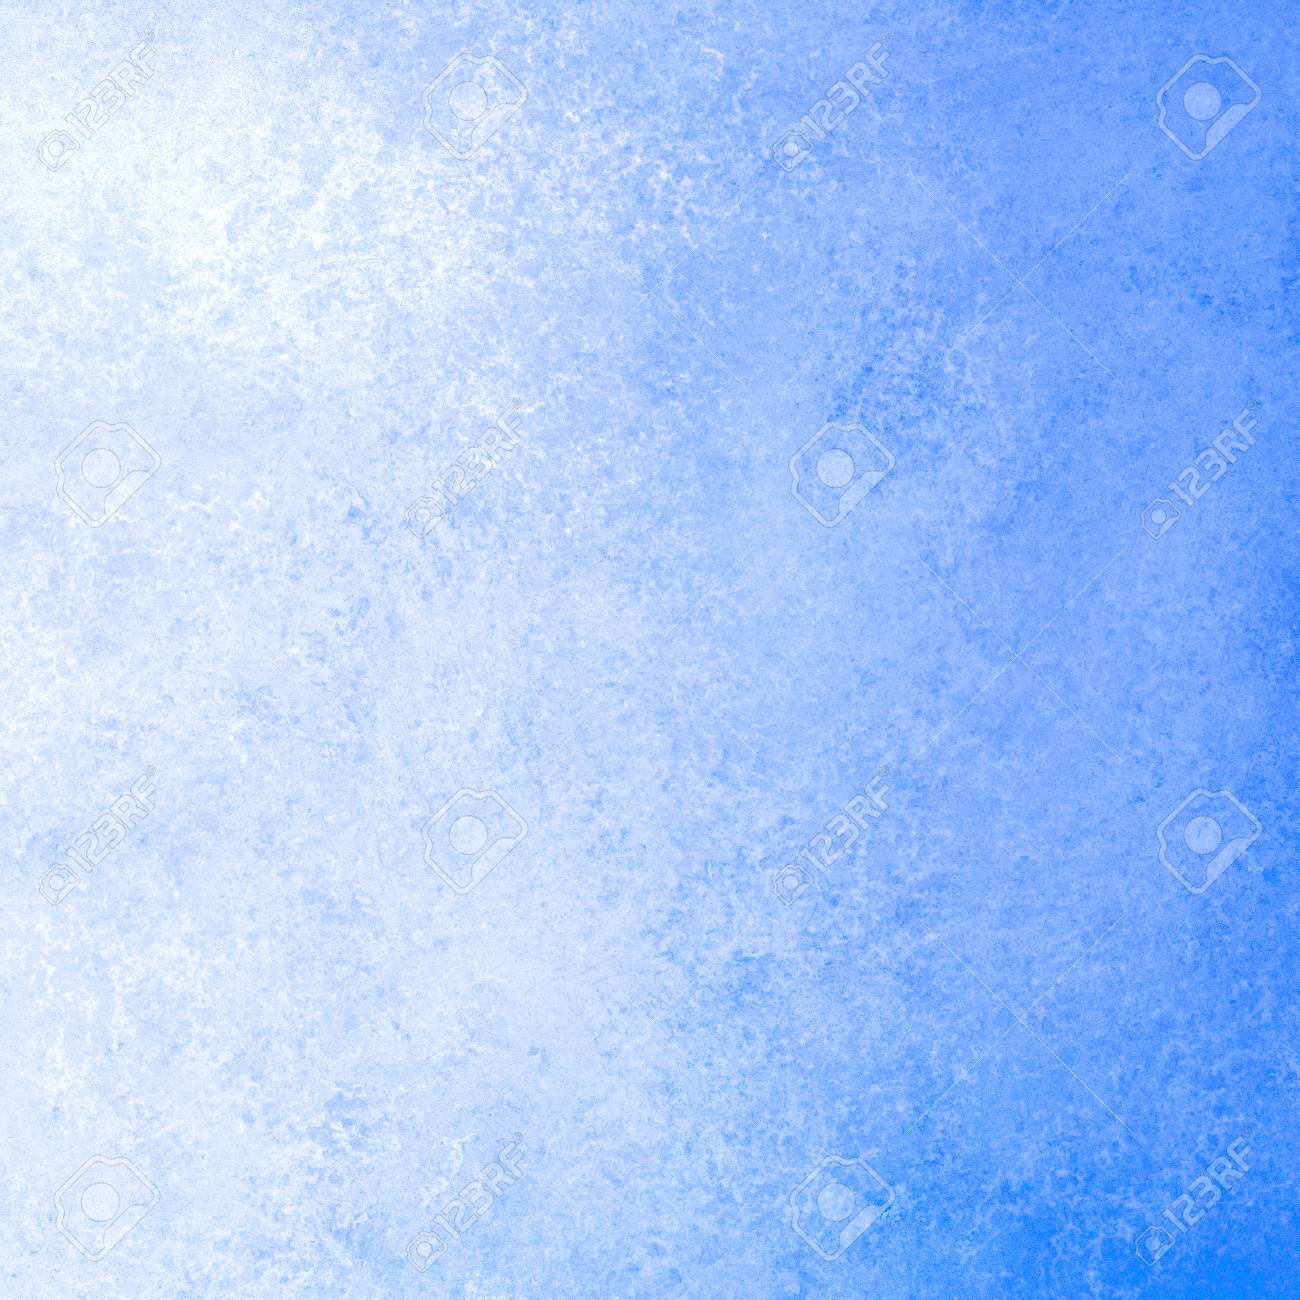 faded blue and white background with grungy texture and gradient